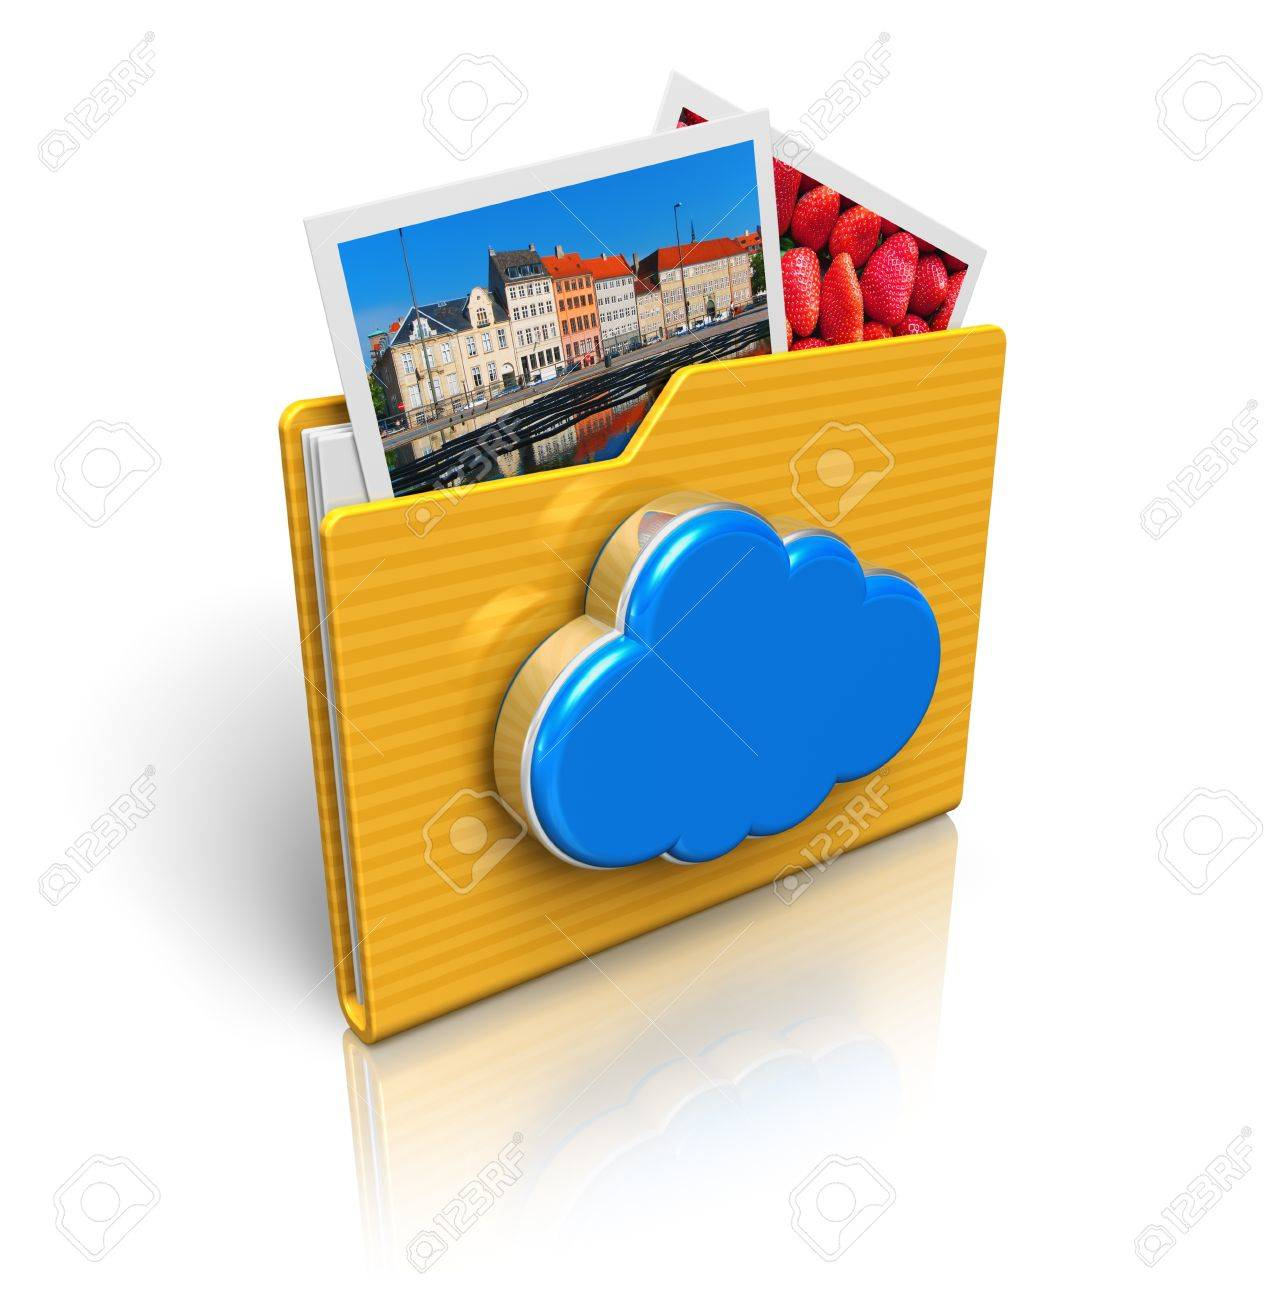 Cloud computing and media storage concept  folder icon with photos and blue glossy cloud icon isolated on white background with reflection effect     All photos used here are my own from my own portfolio Stock Photo - 13541264